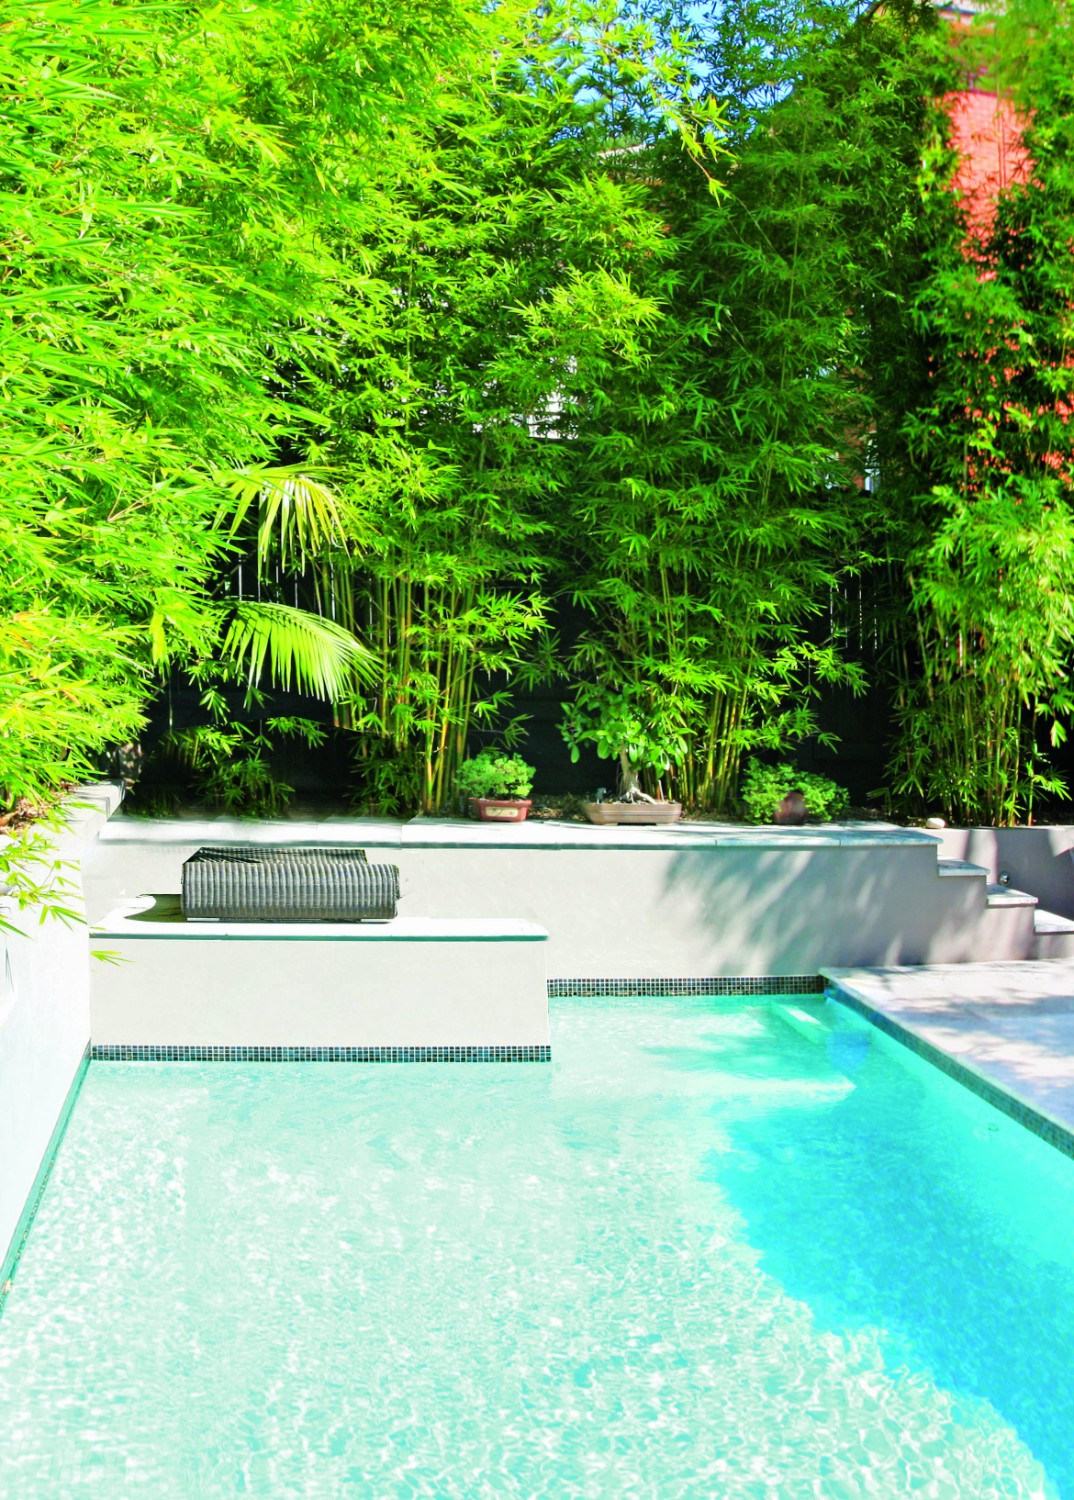 Screening plants: creating your outdoor sanctuary - pool screen hedges